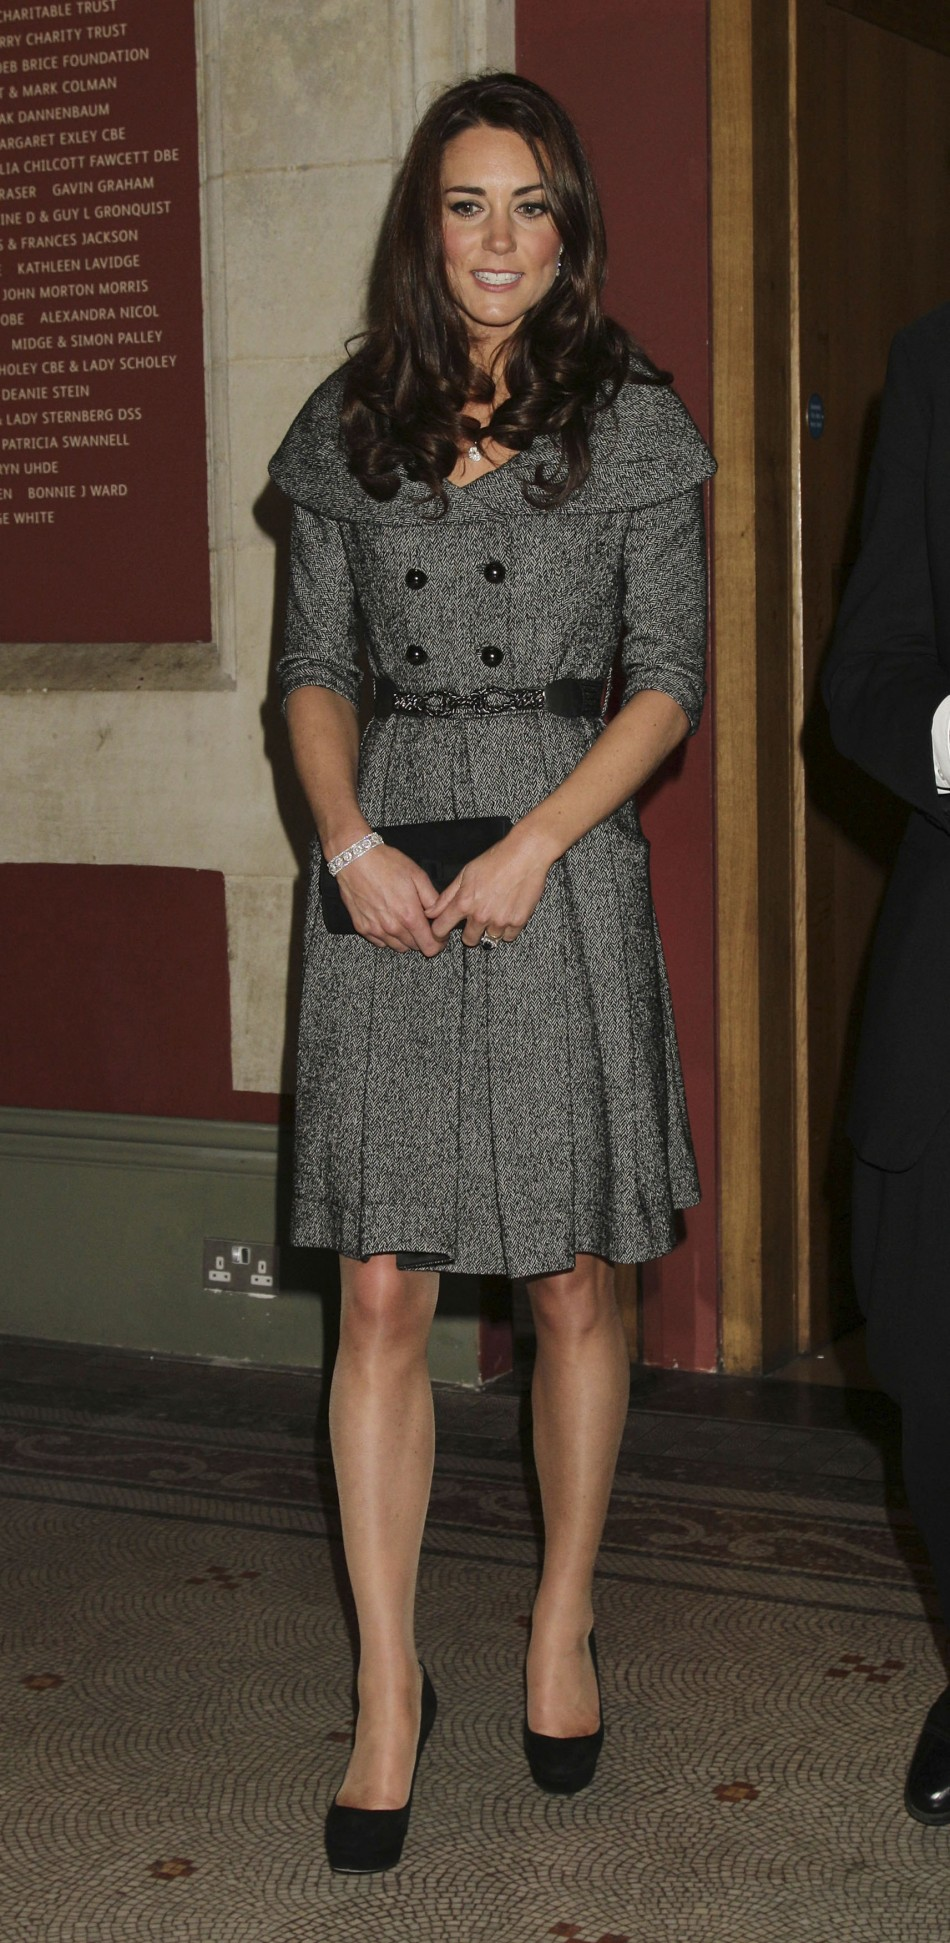 Britains Catherine, Duchess of Cambridge leaves after visiting the Lucian Freud Portraits exhibition at the National Portrait Gallery in central London